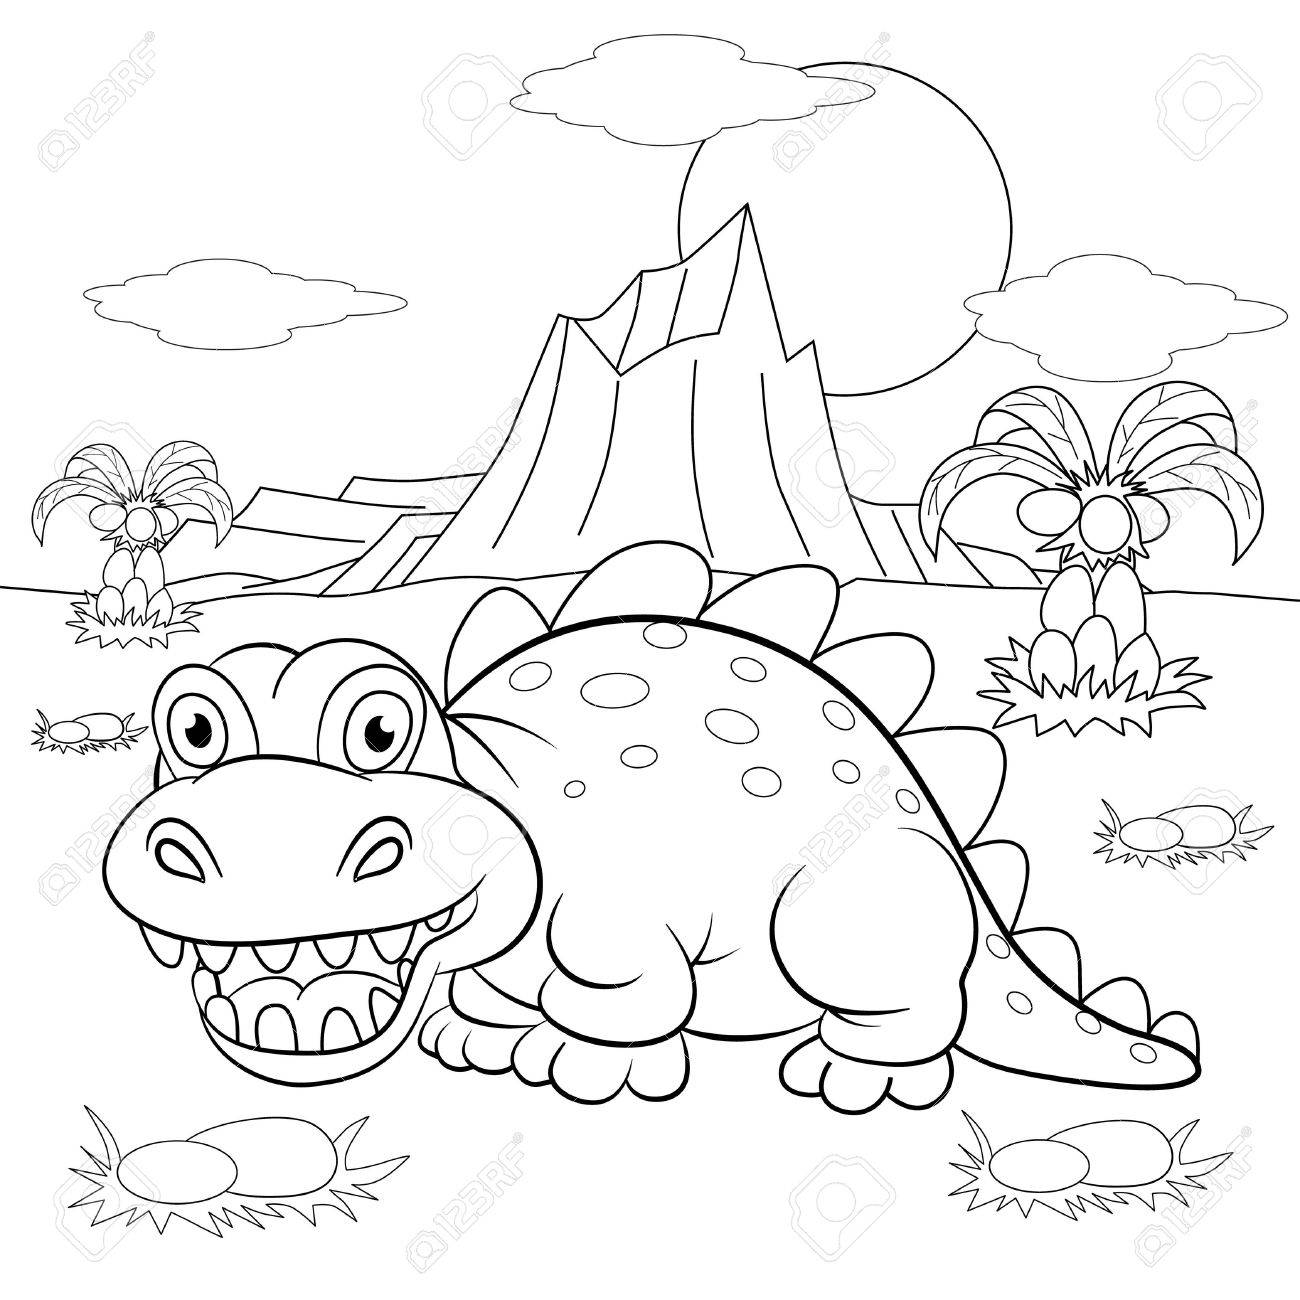 1300x1300 Coloring Book. Funny Dinosaur In A Prehistoric Landscape. Cartoon